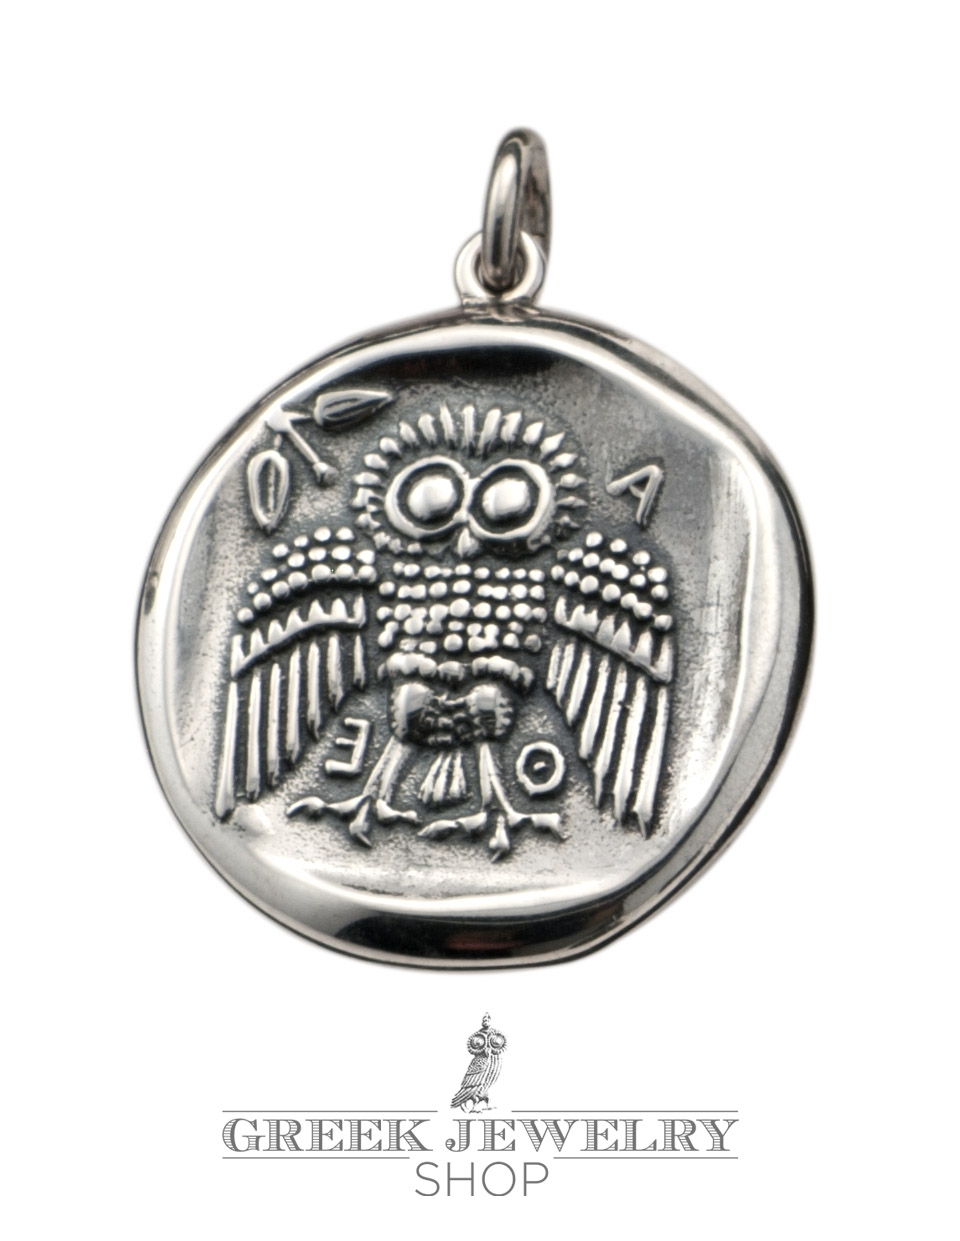 Greek silver pendants ancient coins symbols jewelry greek sterling silver athena and owl of wisdom coin pendant an ancient greek coin jewelry reproduction biocorpaavc